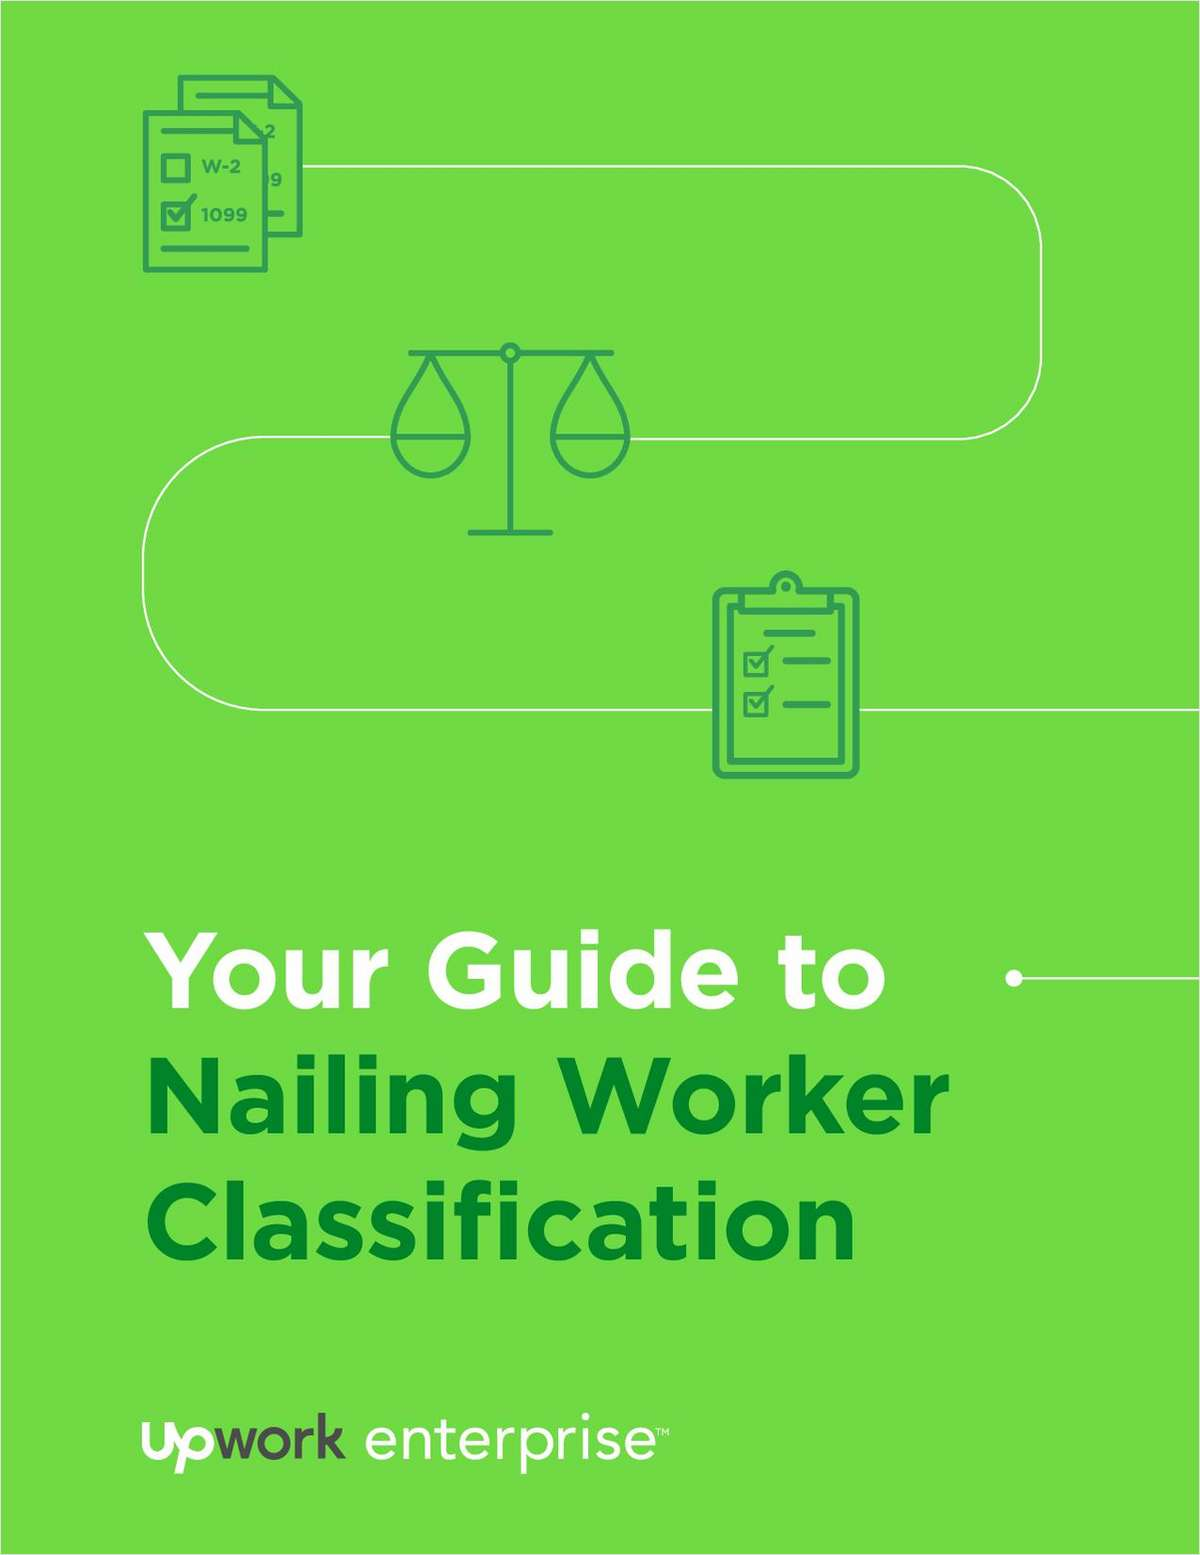 Your Guide to Nailing Worker Classification